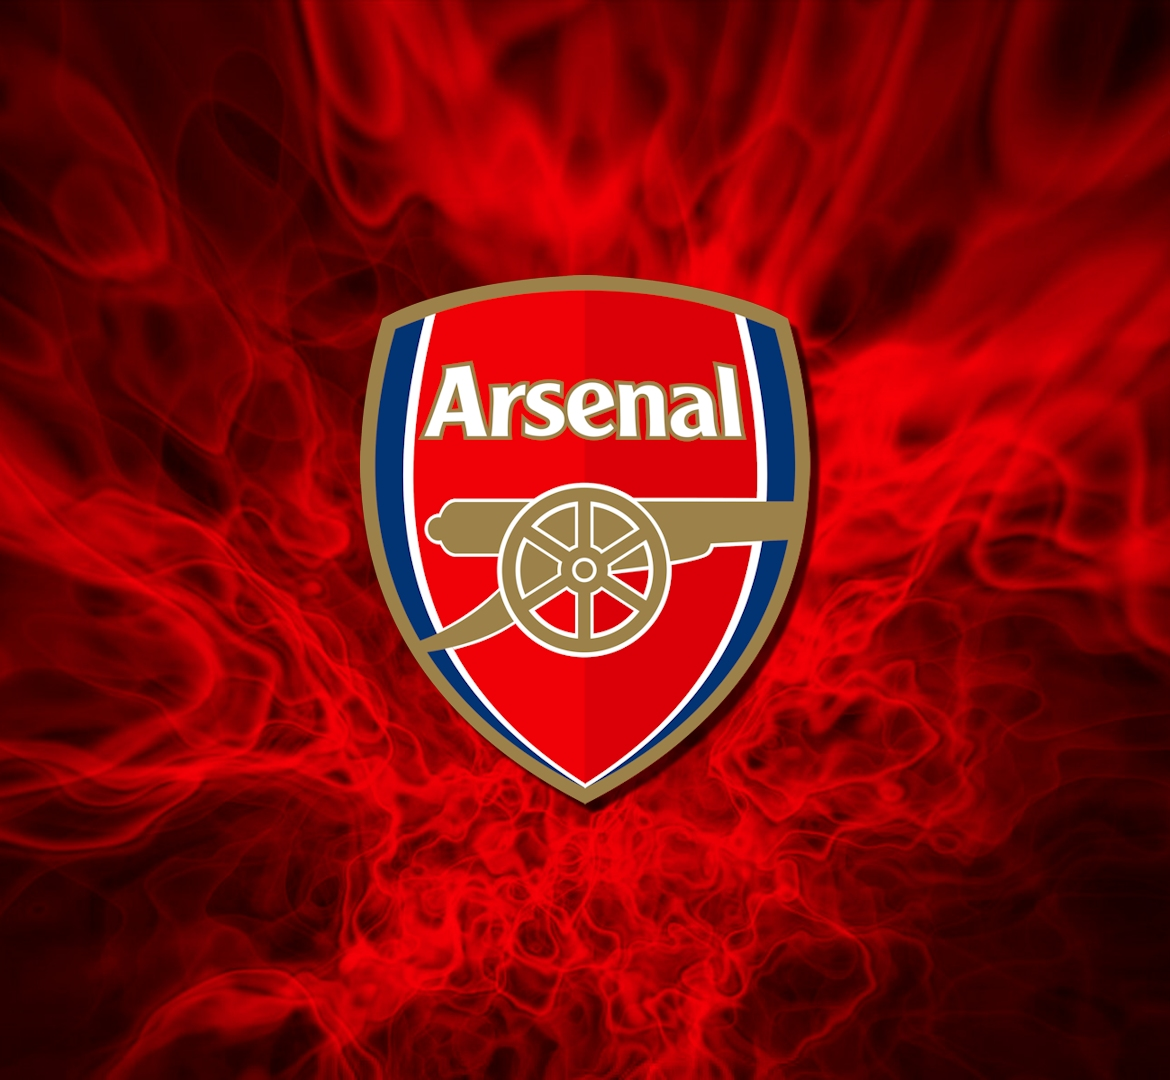 Arsenal Iphone 4 Hd Wallpaper Pictures 1170x1080